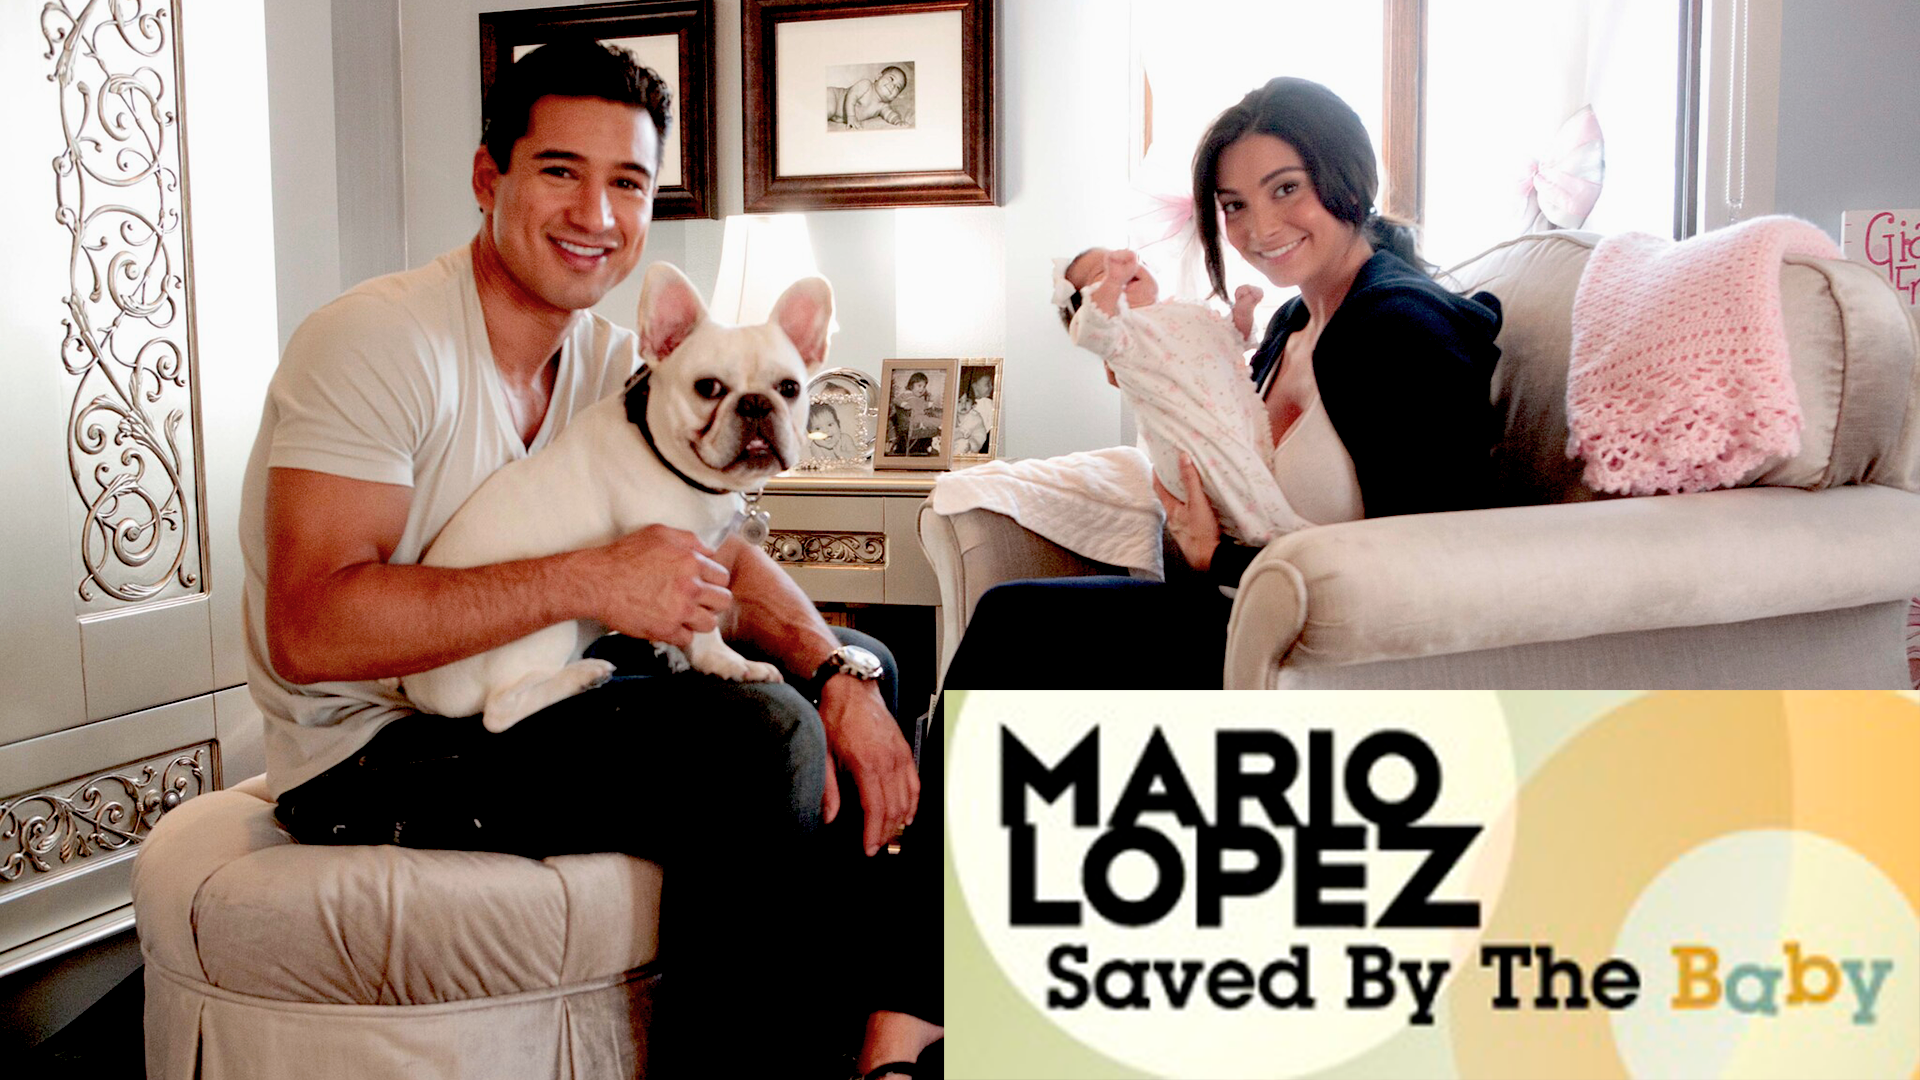 Mario Lopez Saved By The Baby